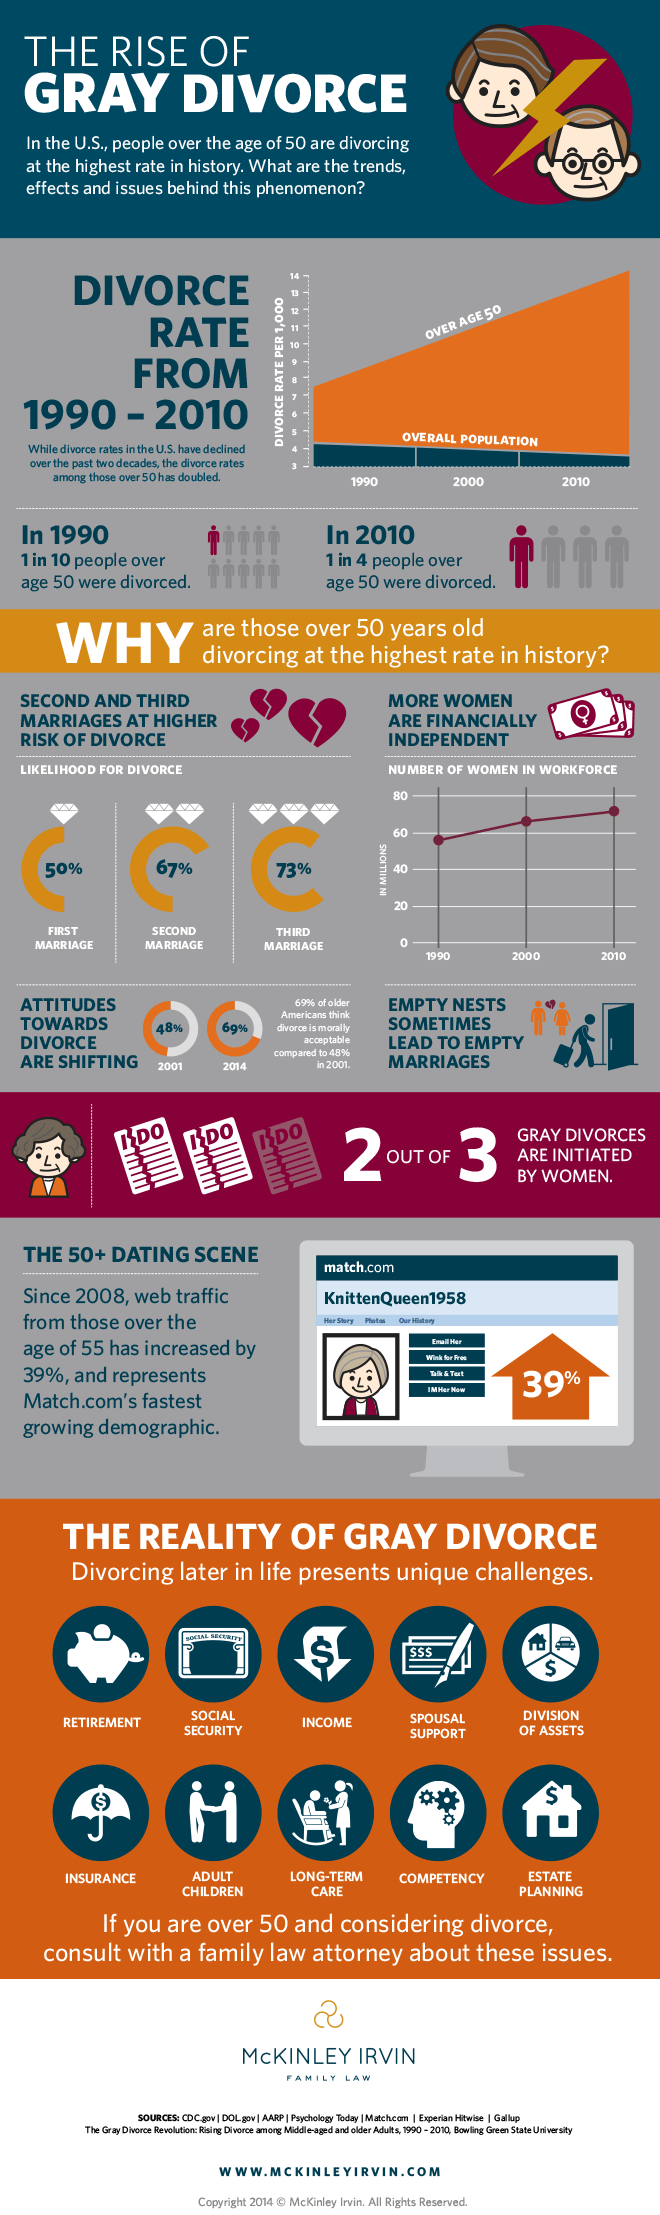 gray-divorce-infographic-mckinley-irvin-2014